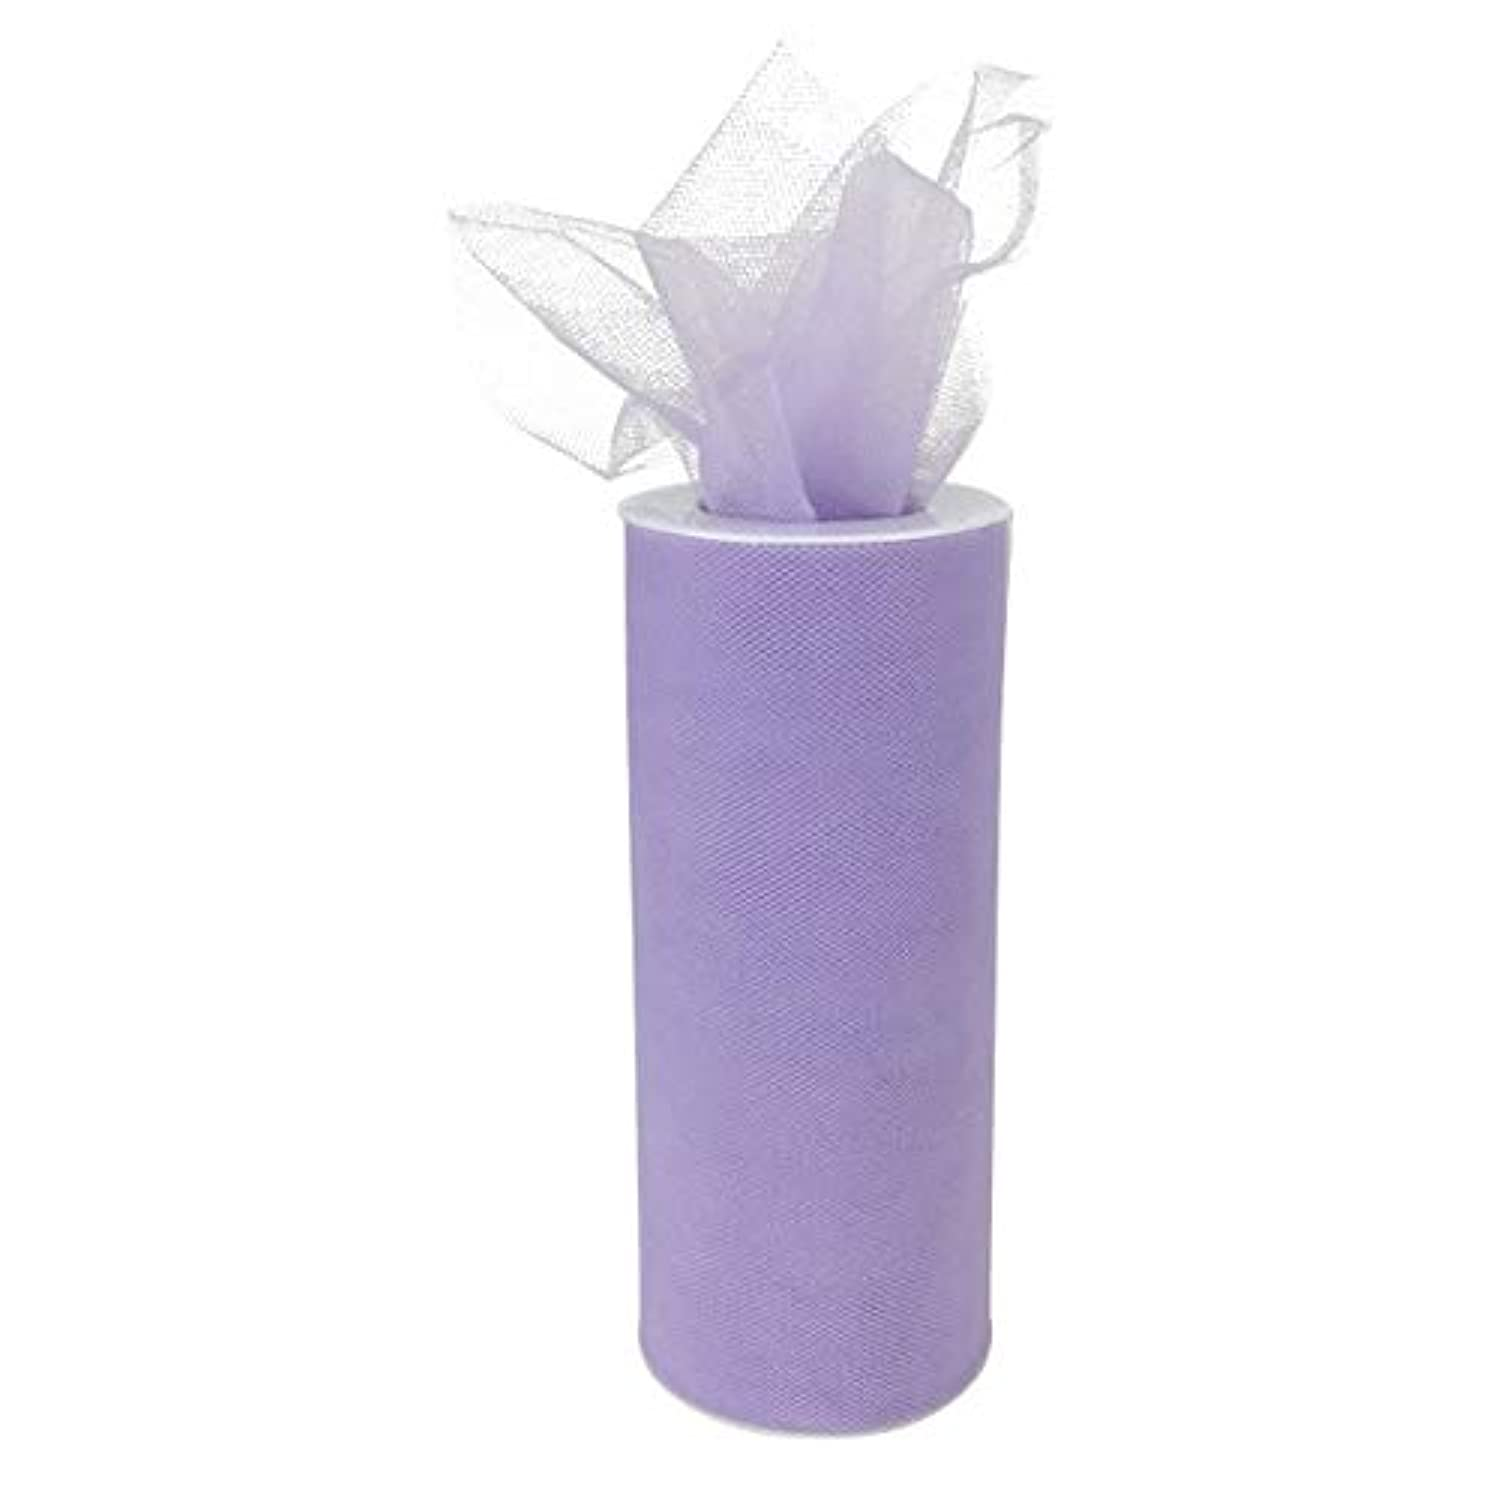 Just Artifacts - Tulle Fabric Roll - 6in width/25yrd Length - Lavender